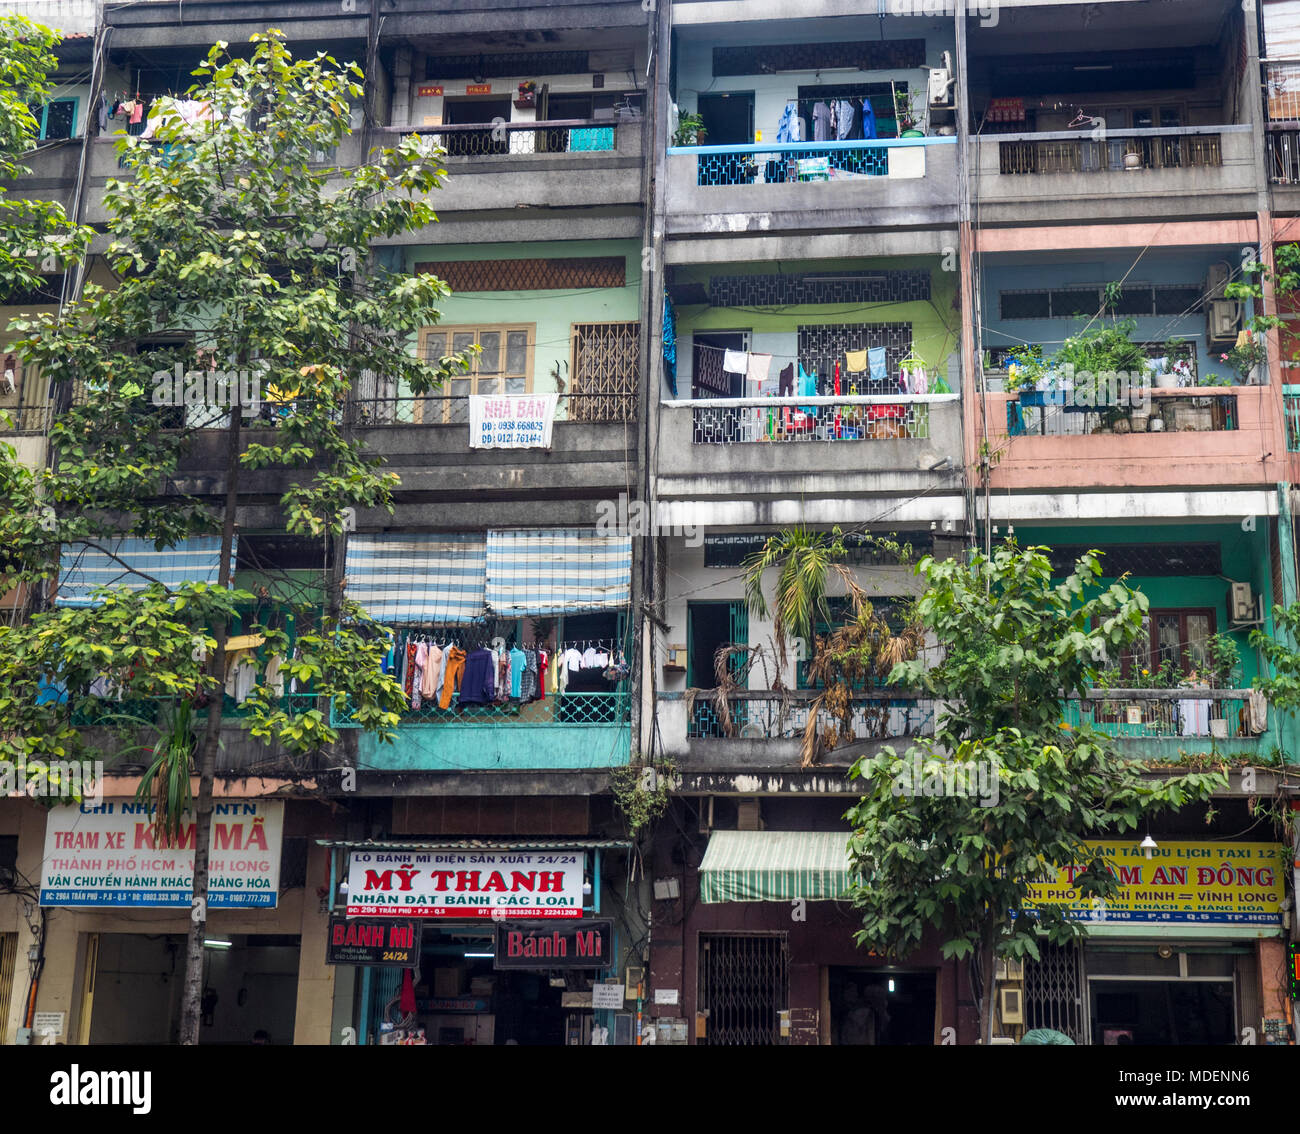 High density shophouse residential building in Ho Chi Minh City, Vietnam. Stock Photo